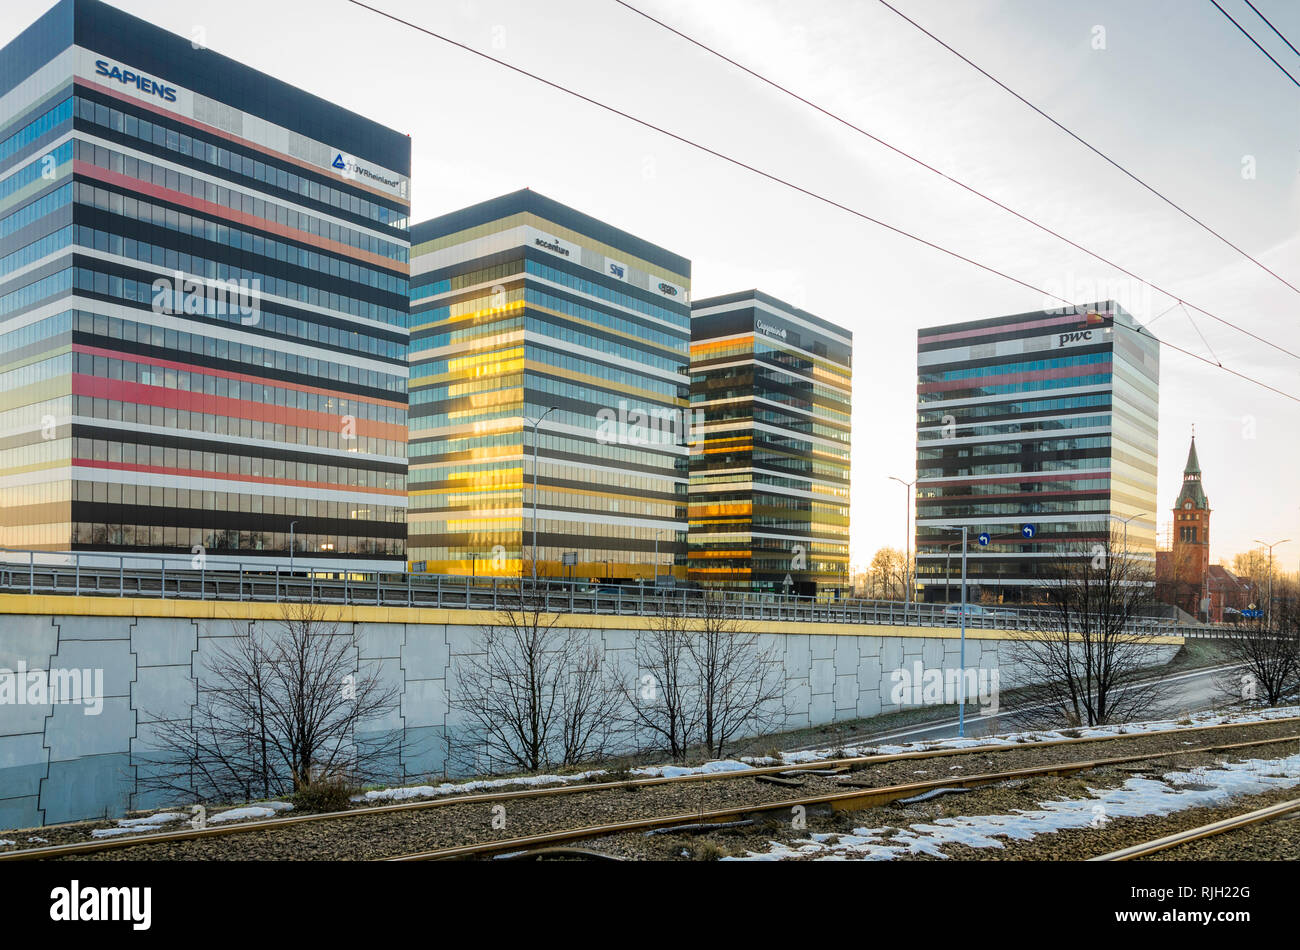 Katowice, Silesia, Poland: January 19, 2019: Tiramisu business center buildings in Katowice, Poland with a nearby tram line and a neogothic church - Stock Image